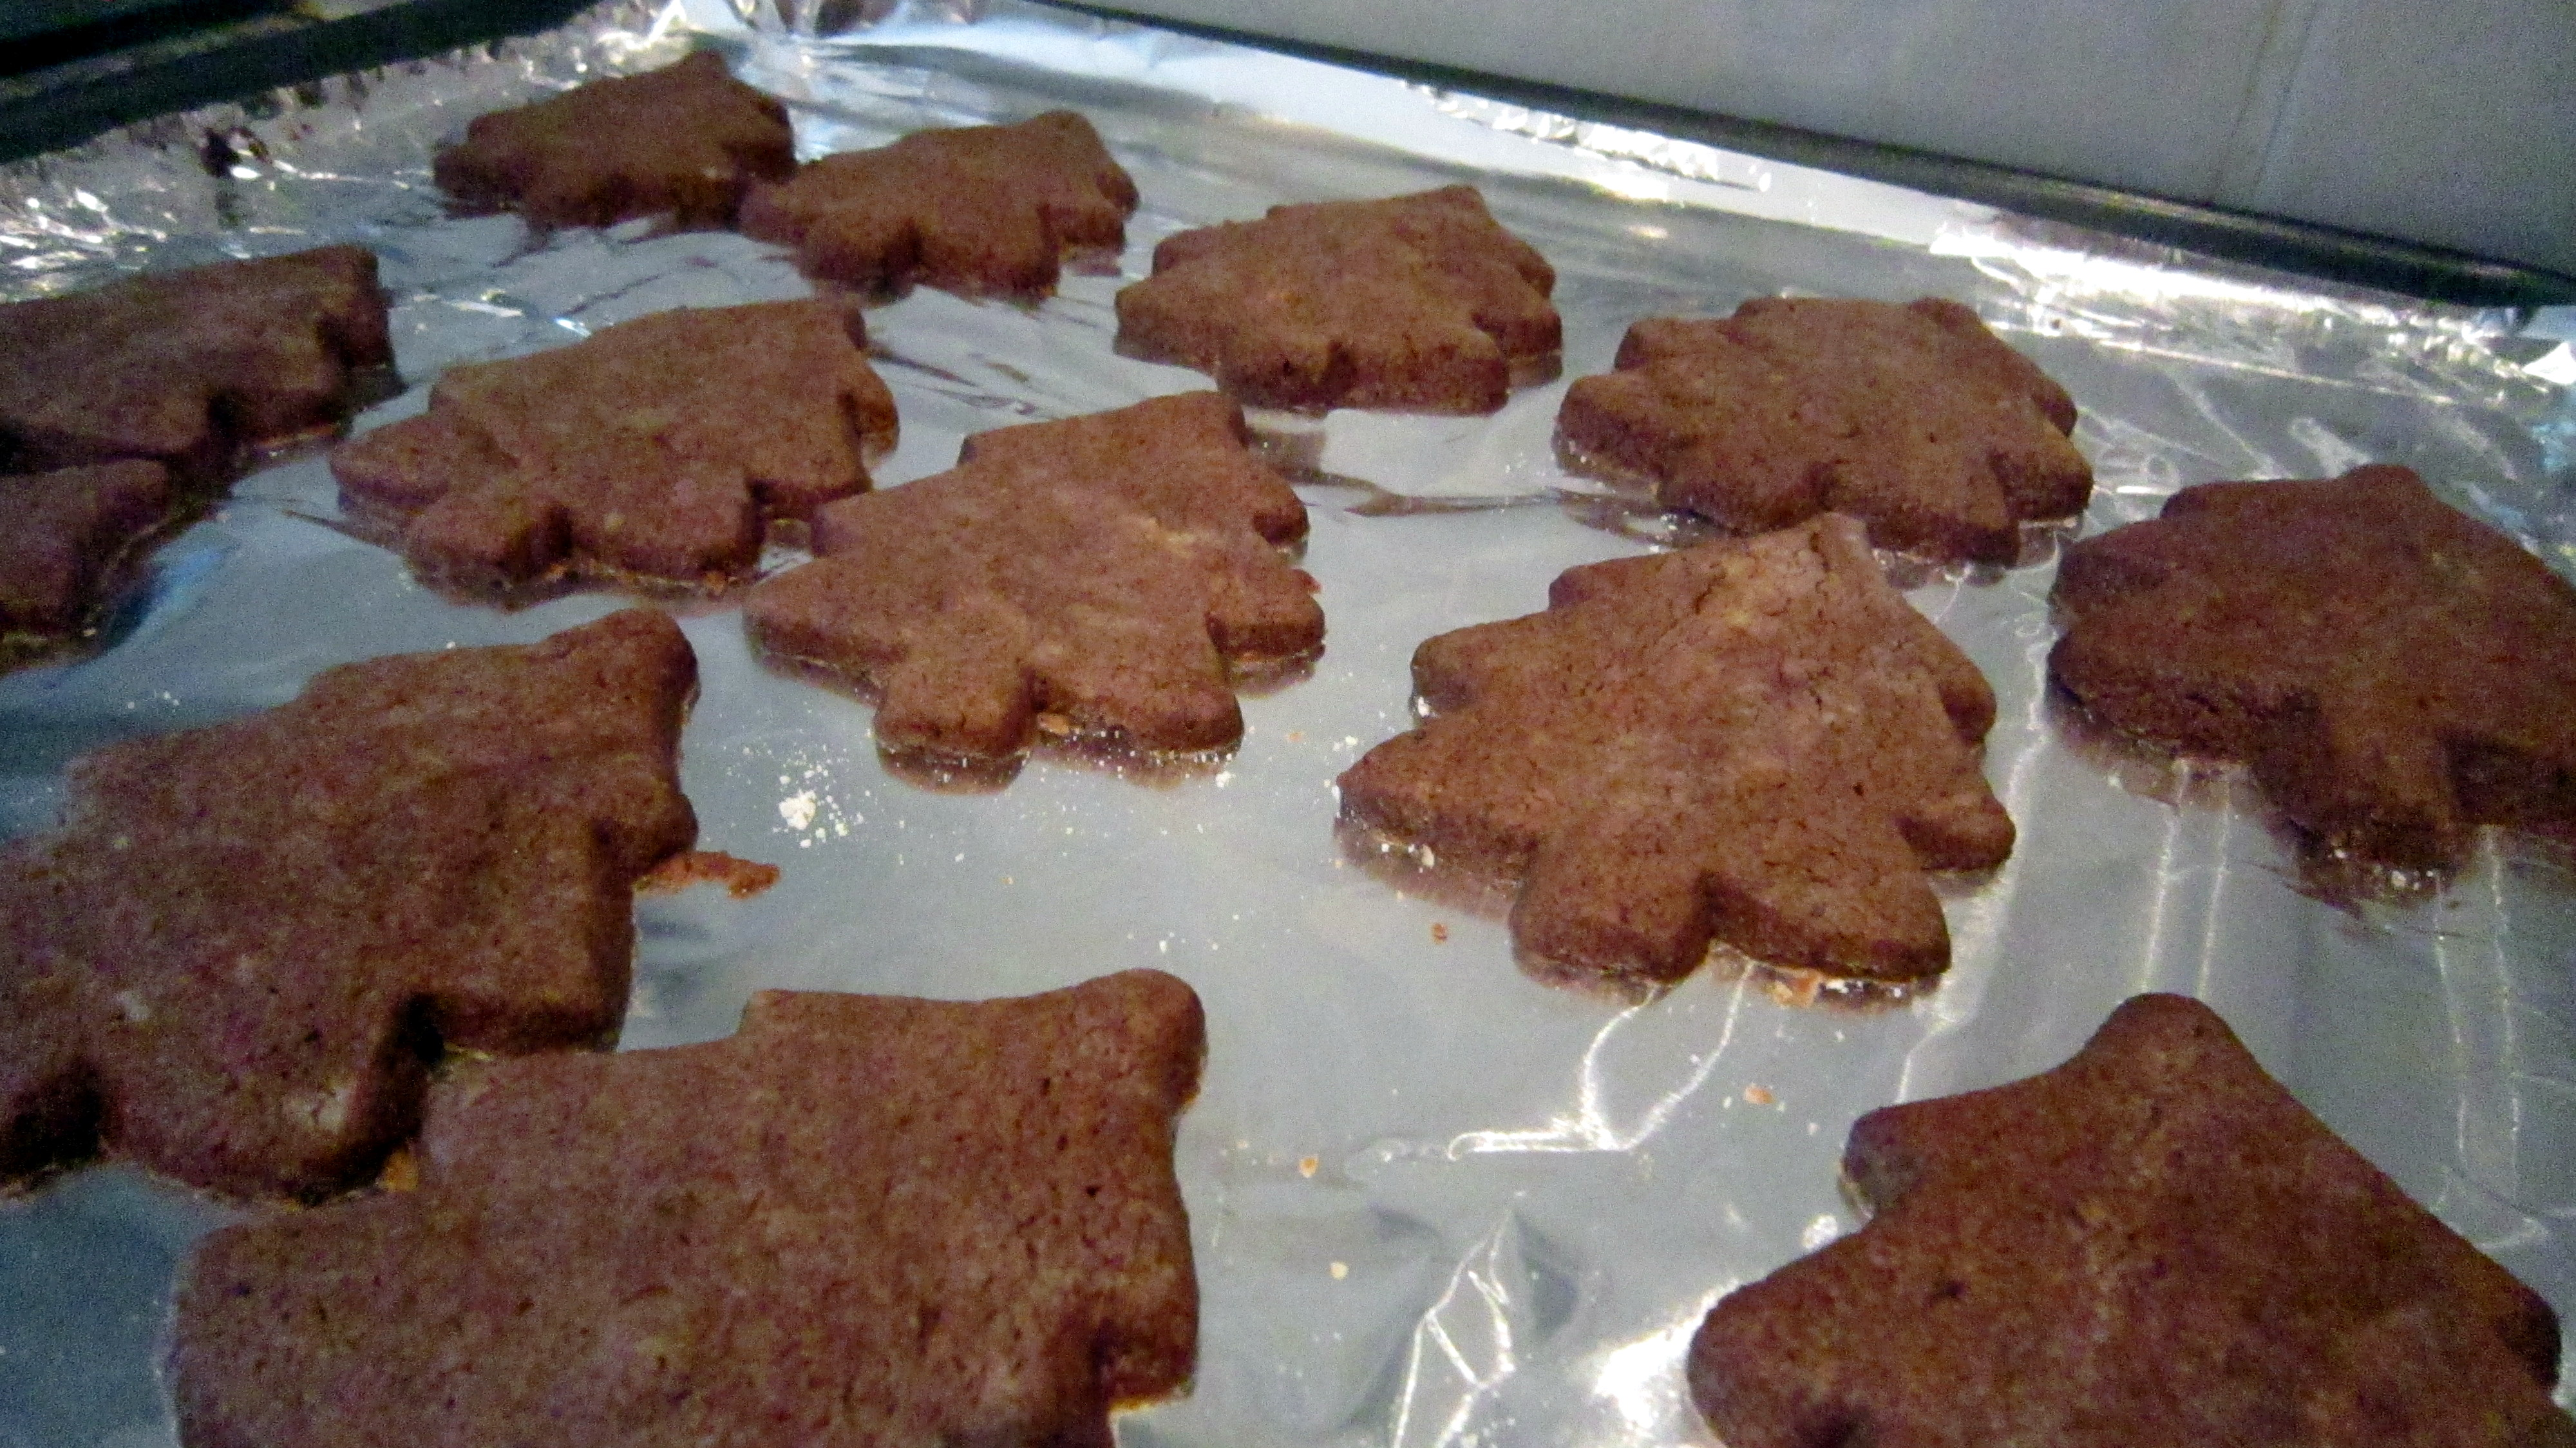 Spiced Christmas Biscuits are one of the 20 recipes to be featured in my new eBook